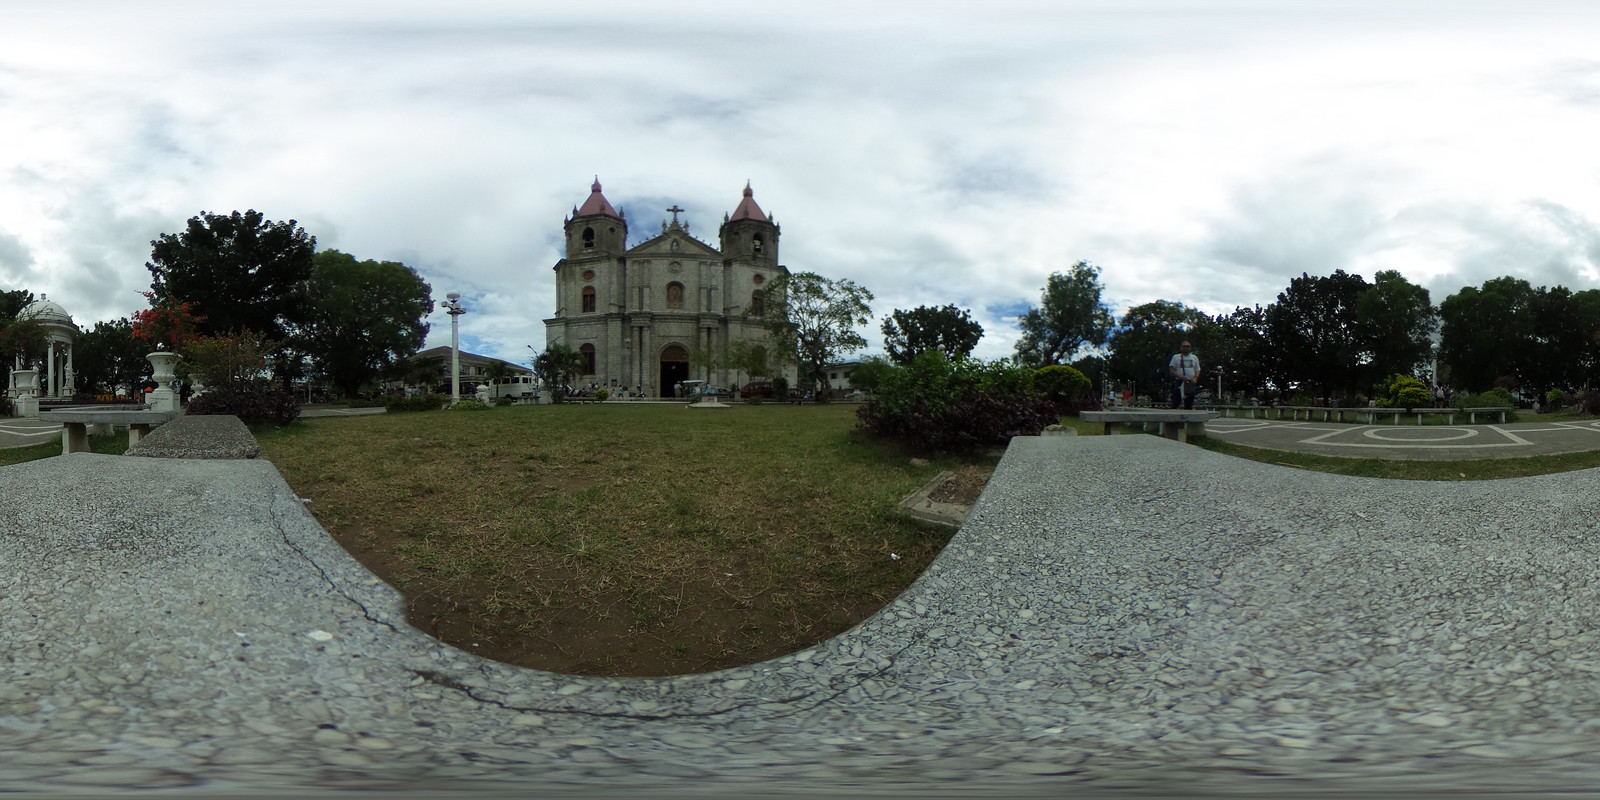 St. Anne Parish Church in Molo Iloilo, Philippines